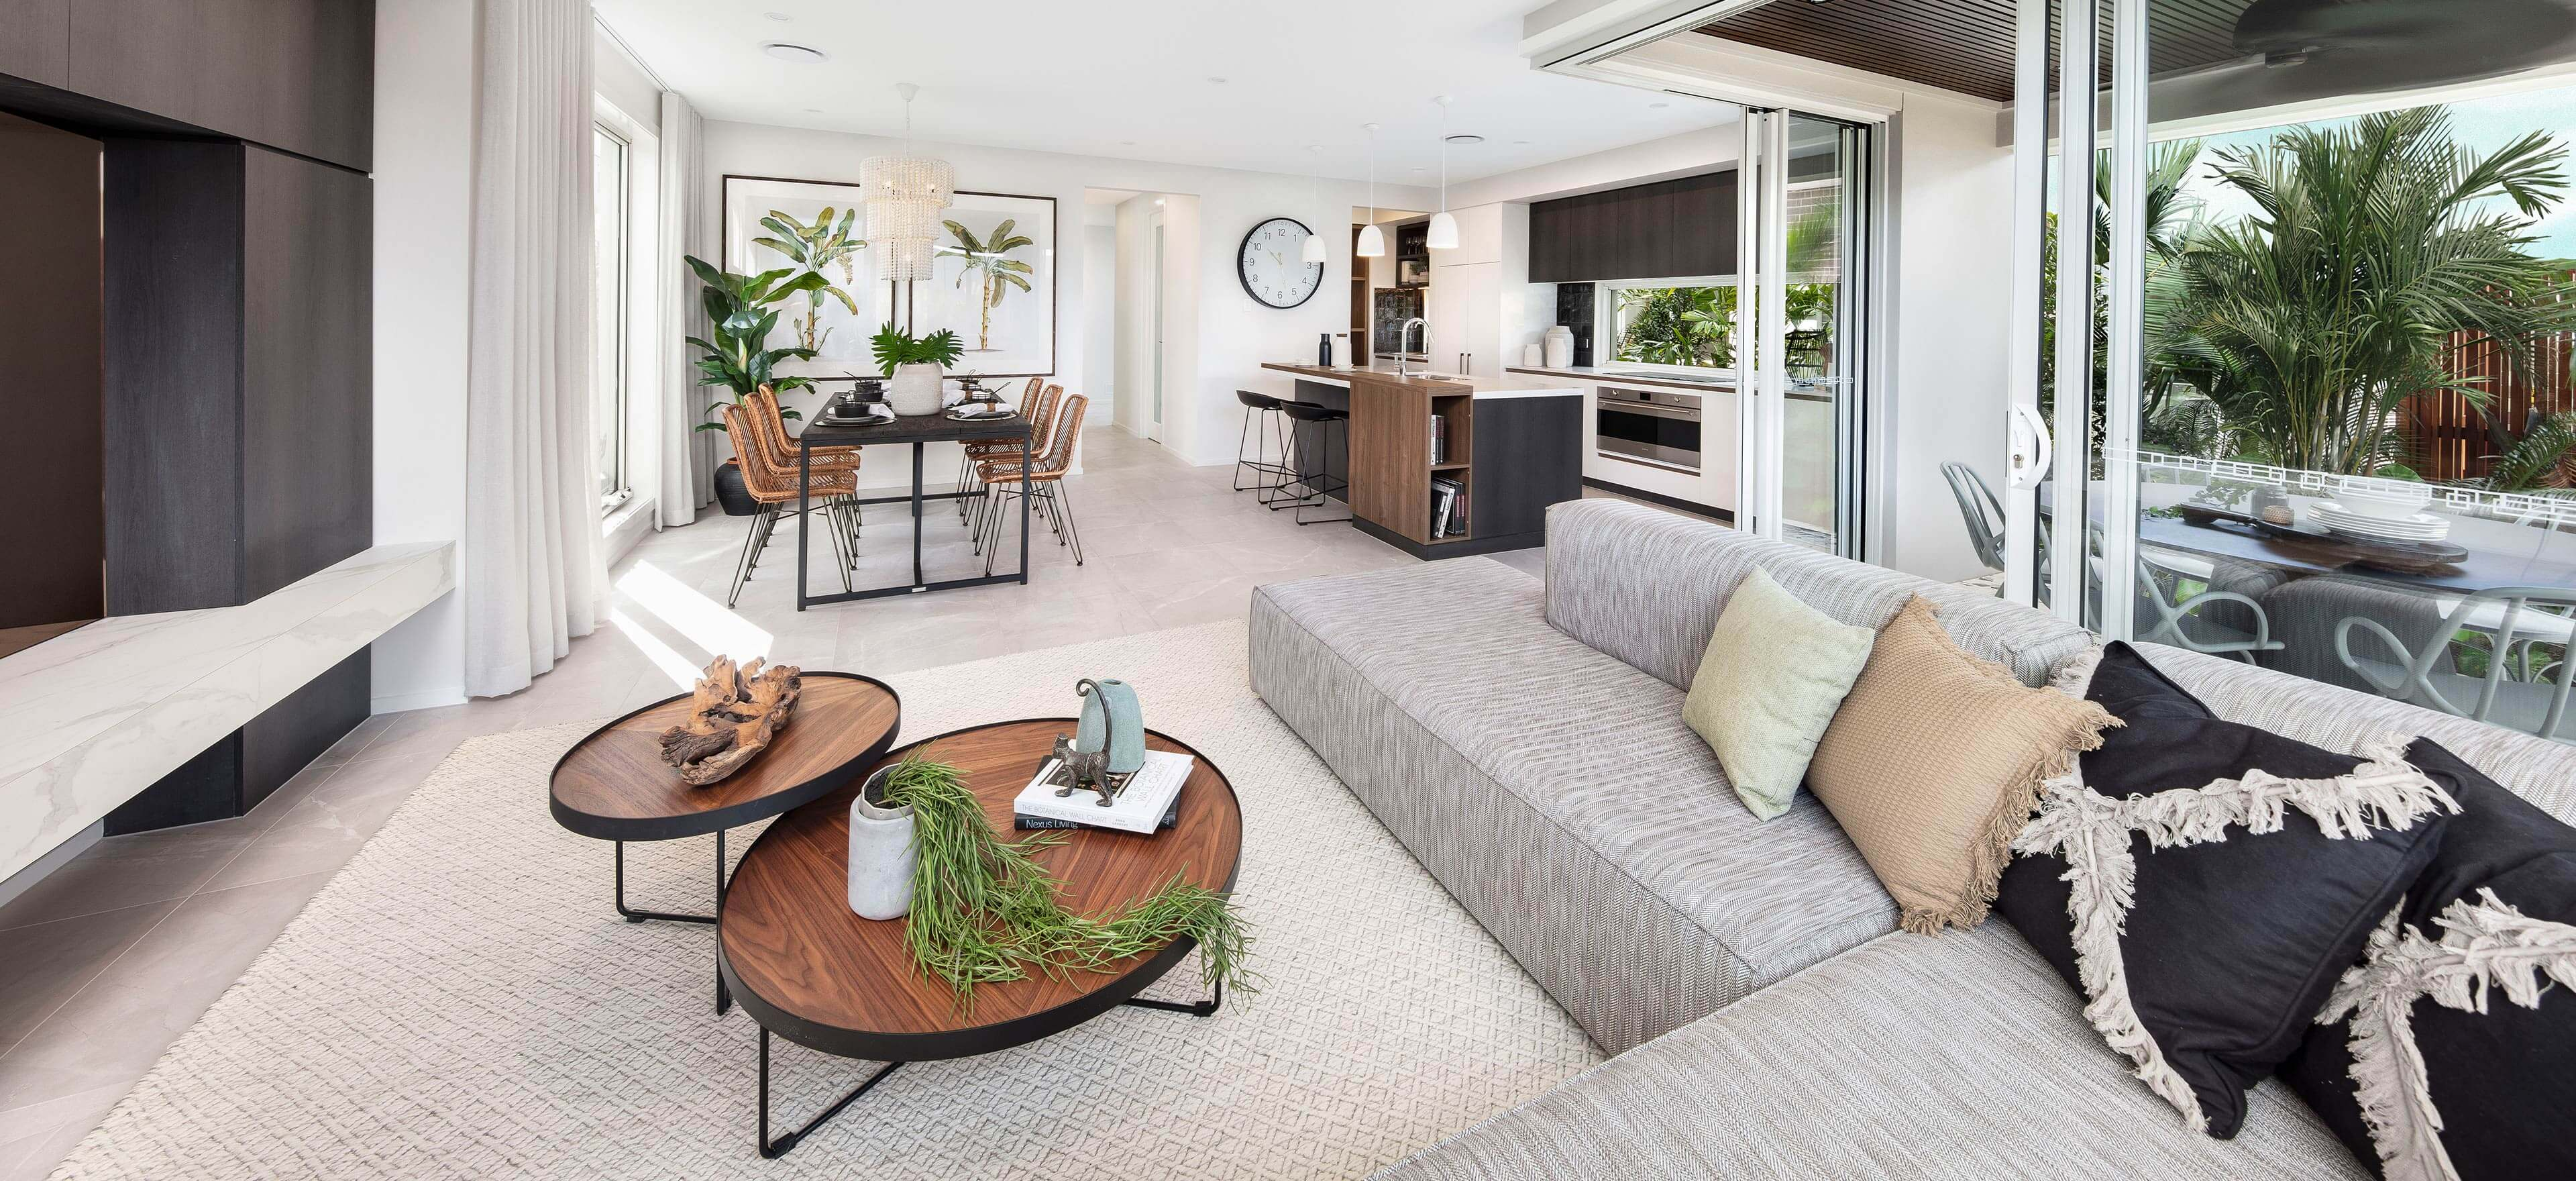 Home Builders Queensland Where we Build